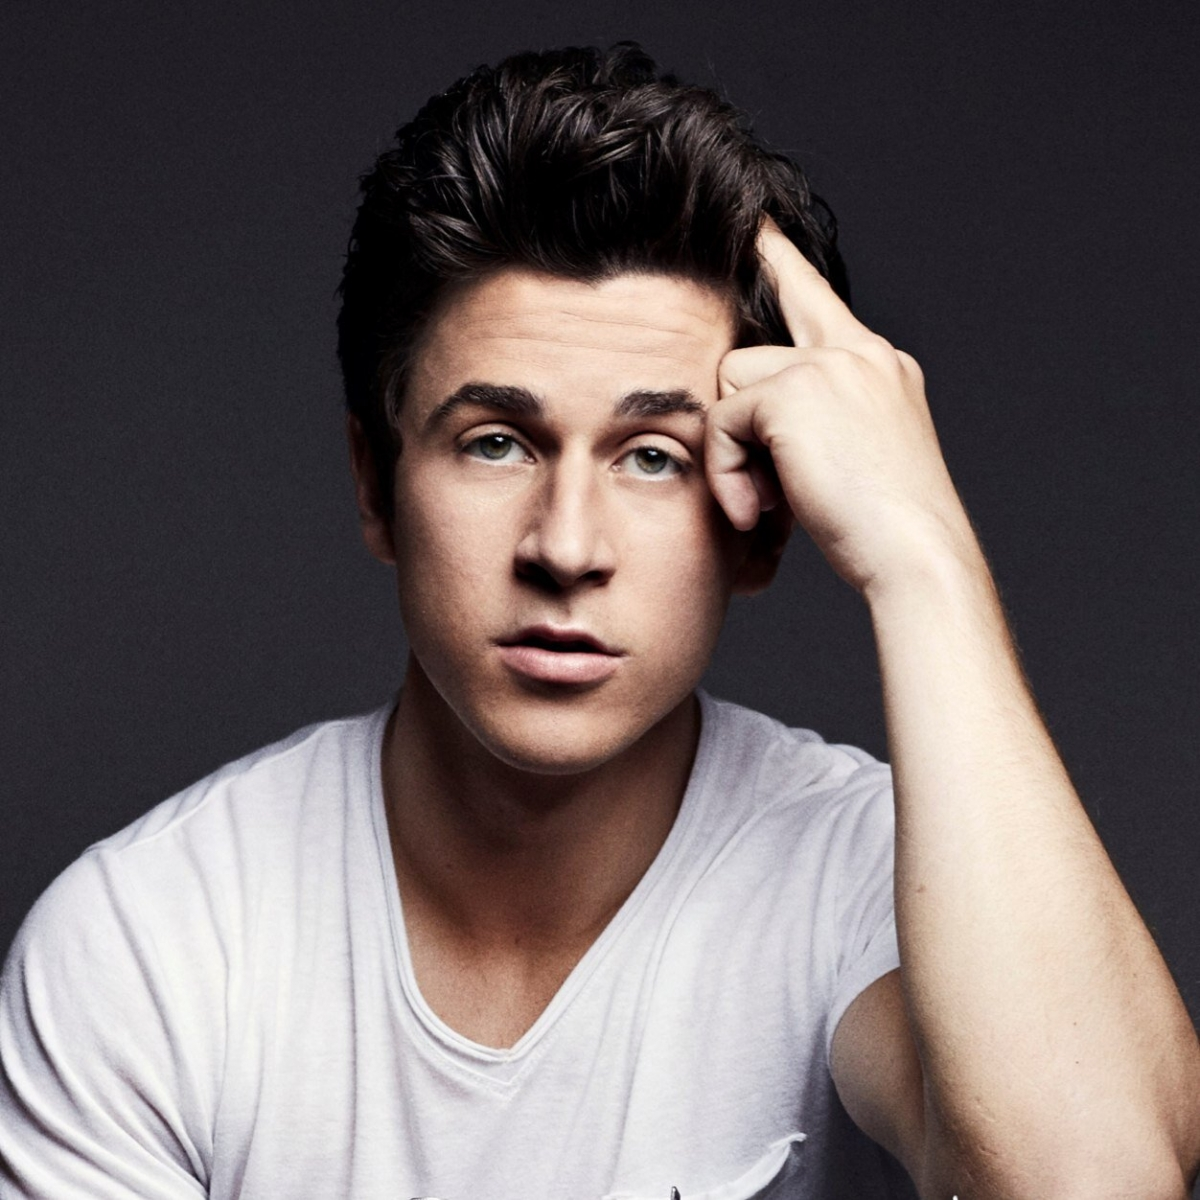 Television writer and actor David Henrie discussed his Christian faith and how he maintains strong values in an interview published Monday.